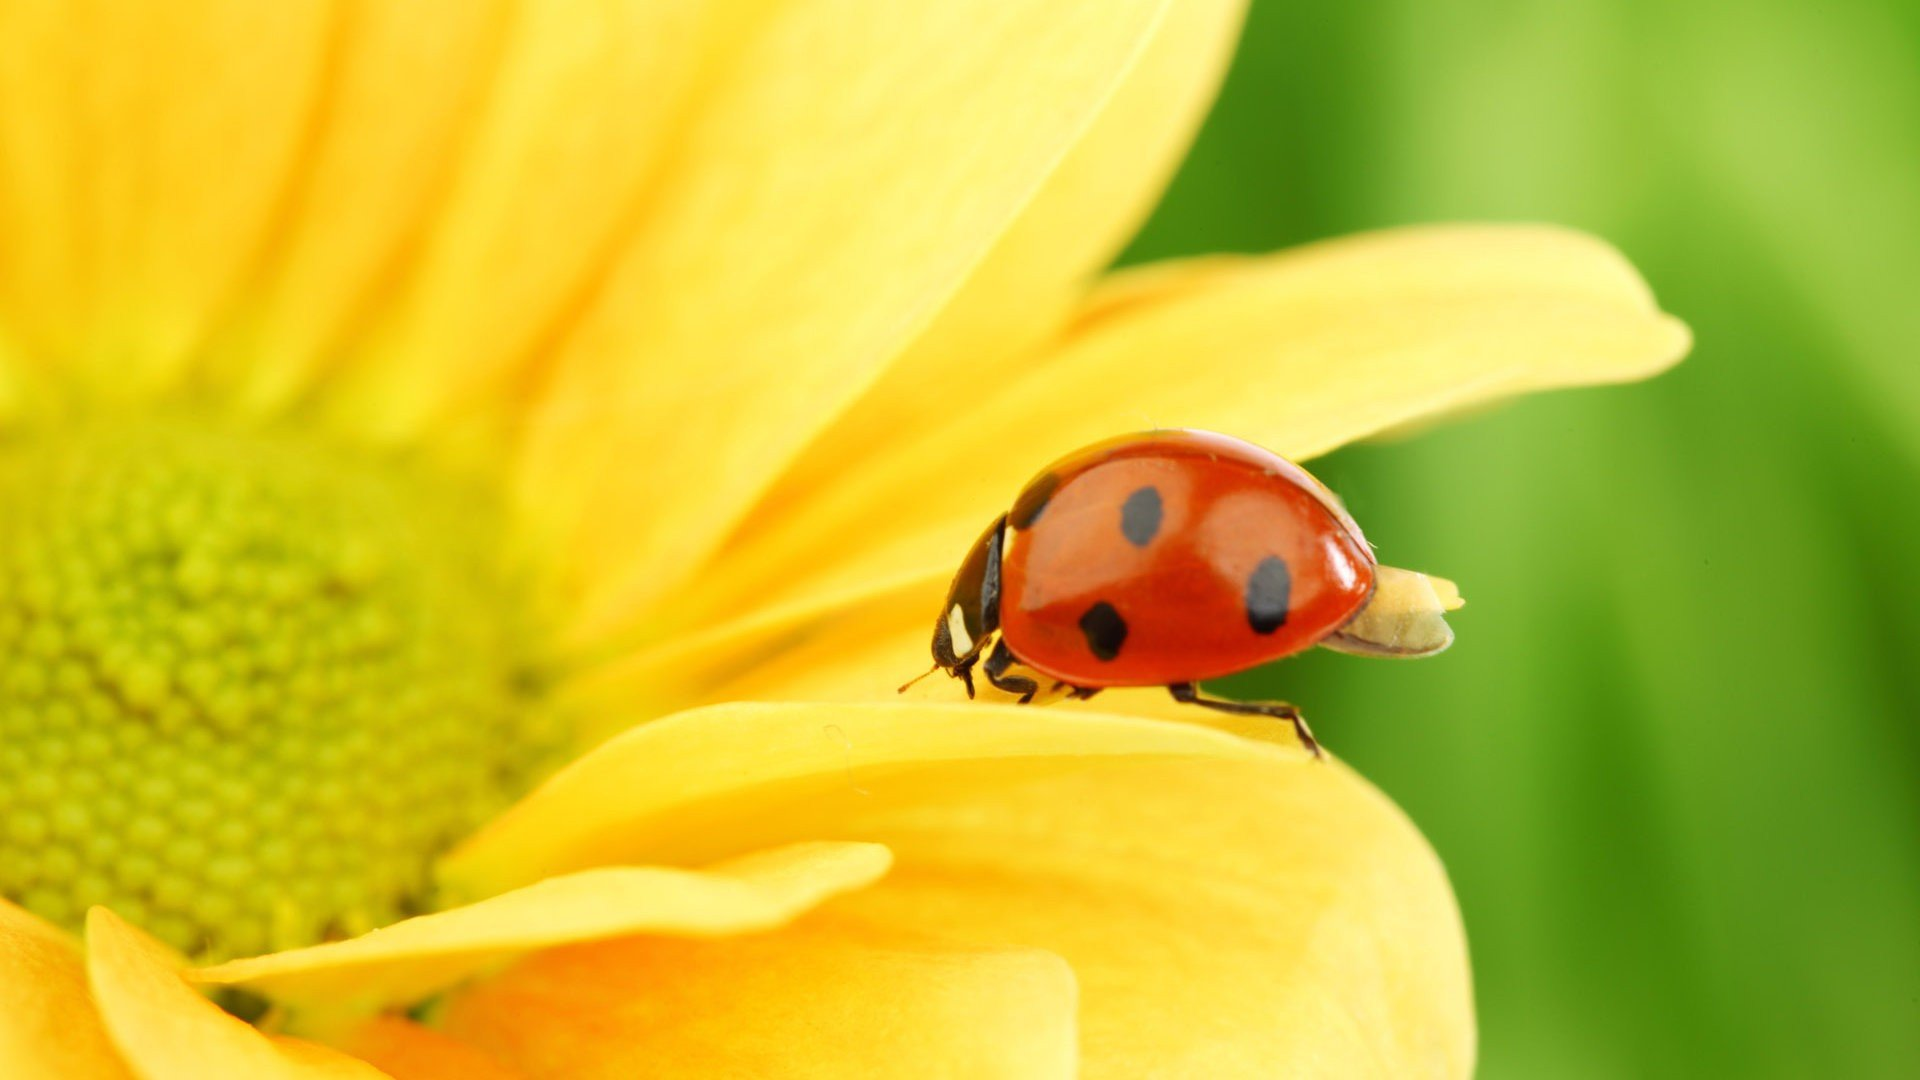 Awesome Ladybug free wallpaper ID:270462 for hd 1080p desktop